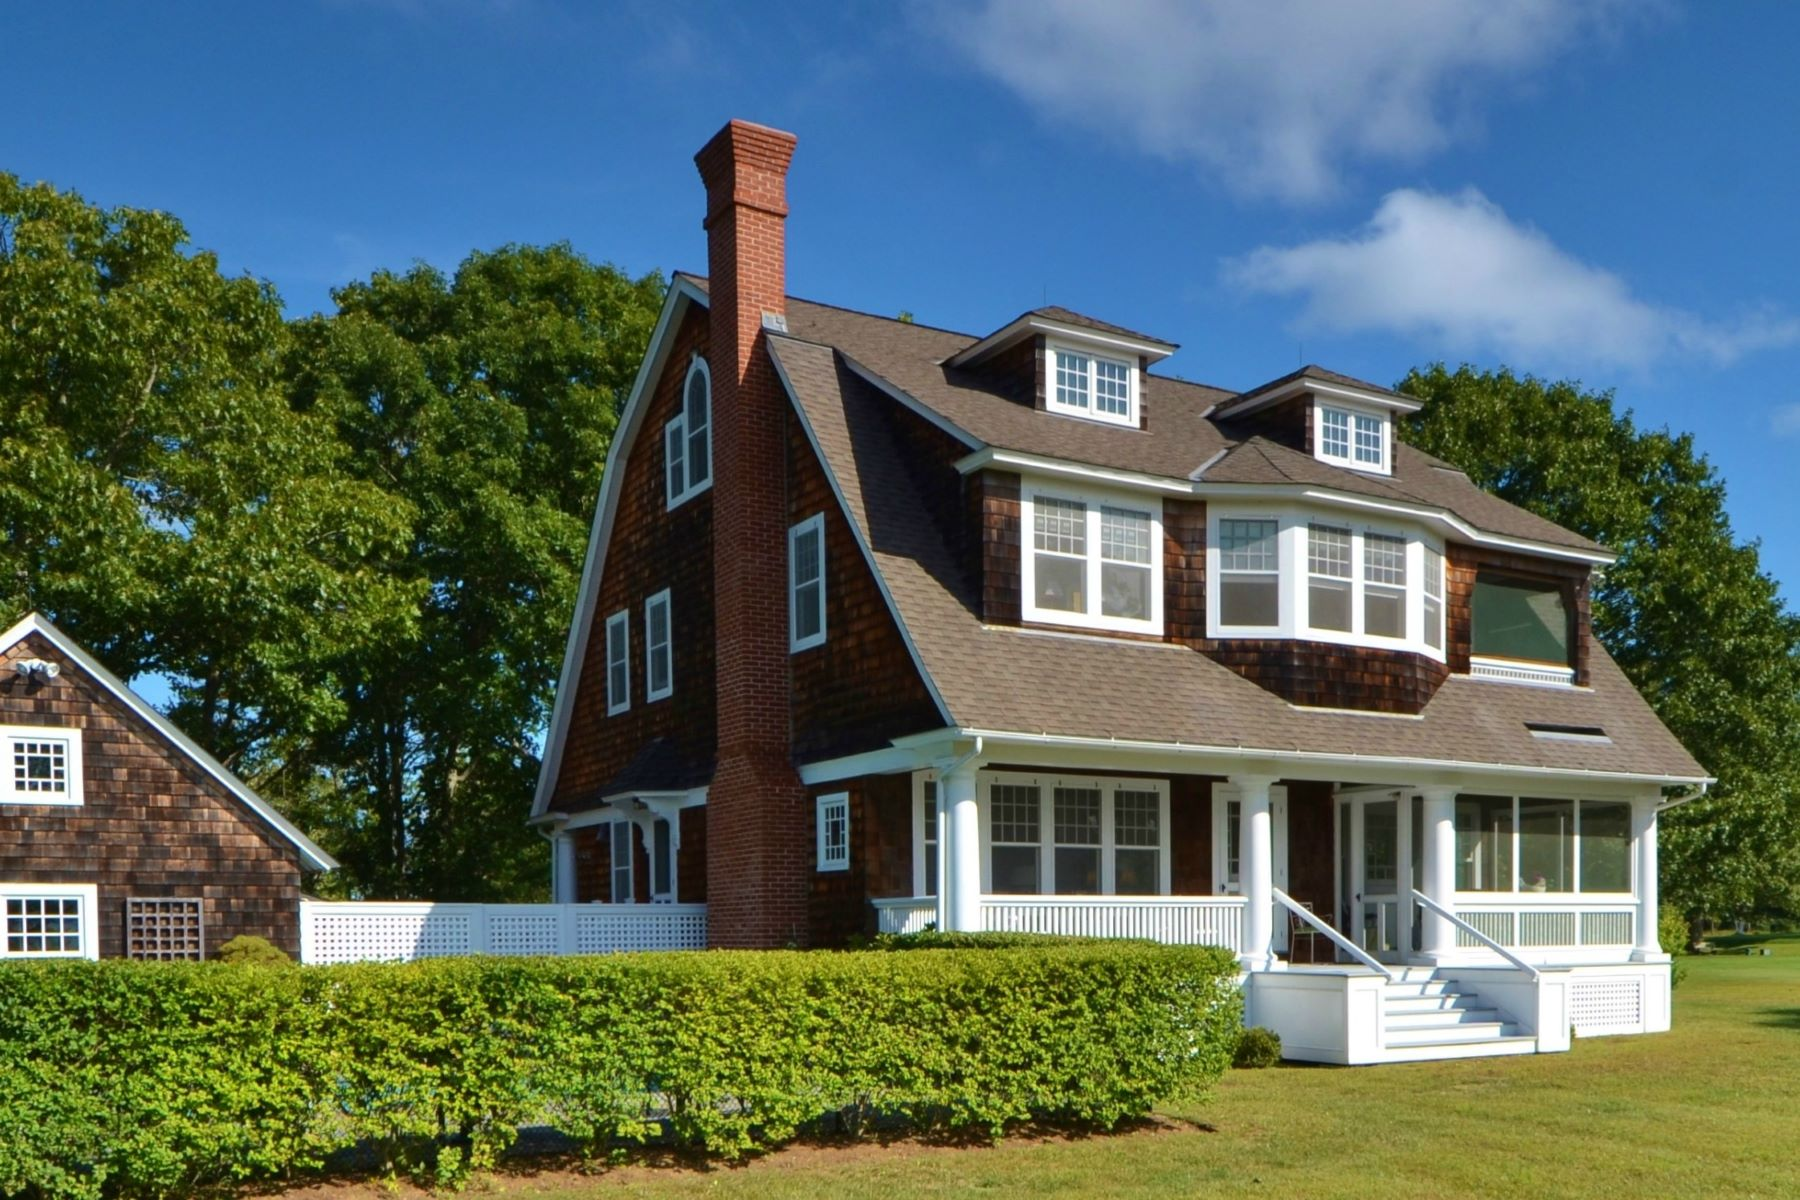 Property for Sale at A Fenwick Gem! 549 Maple Avenue, Old Saybrook, Connecticut 06475 United States